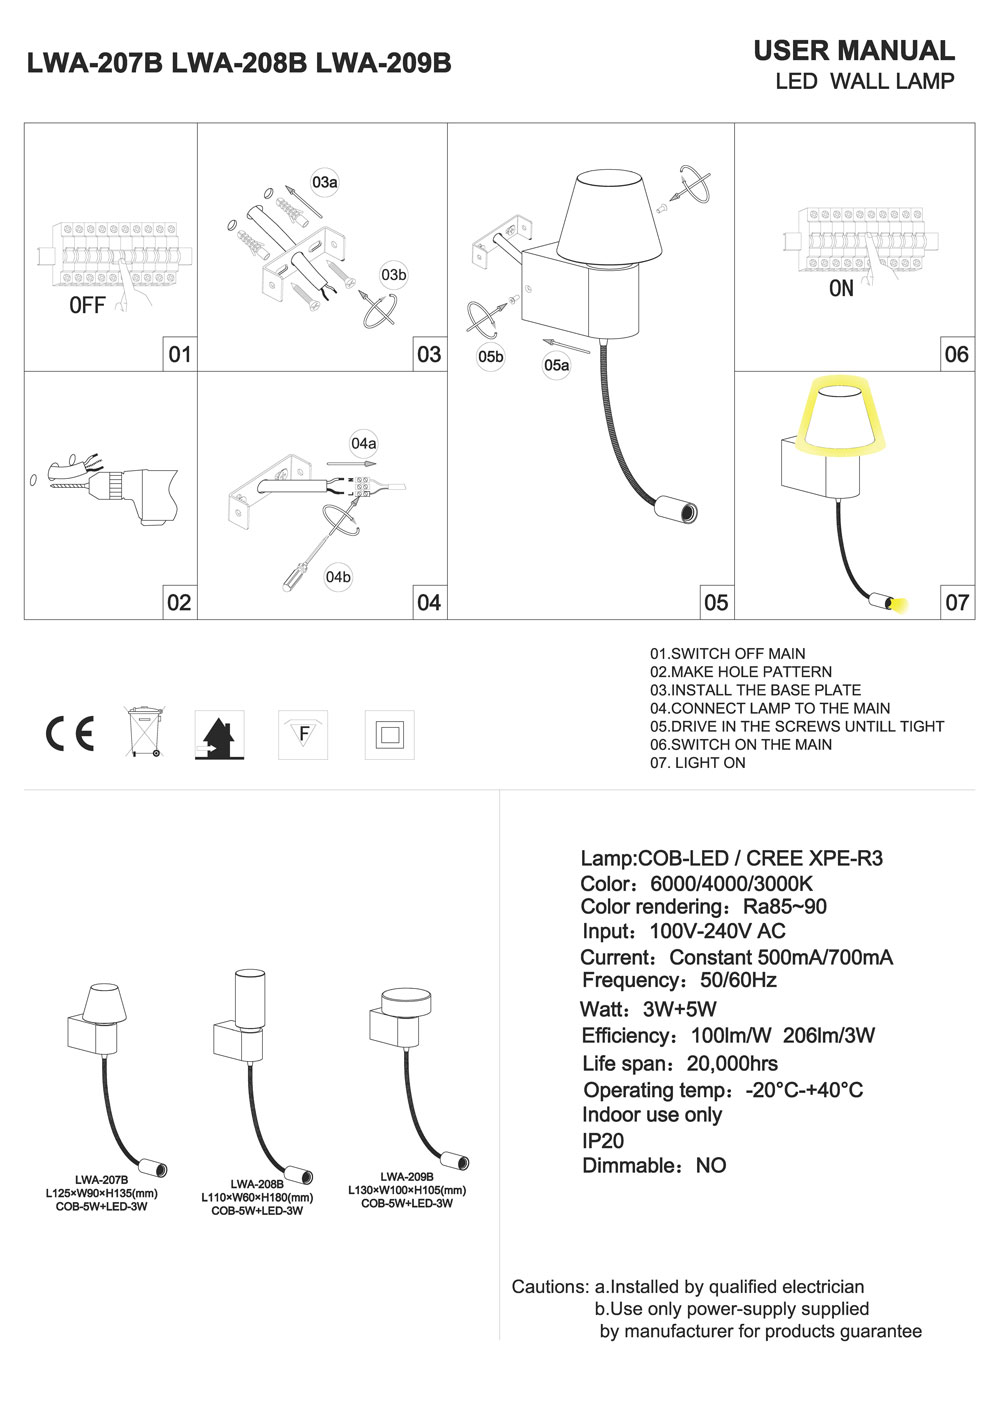 LWA207B-LWA208B-LWA209B LED reading light installation guide